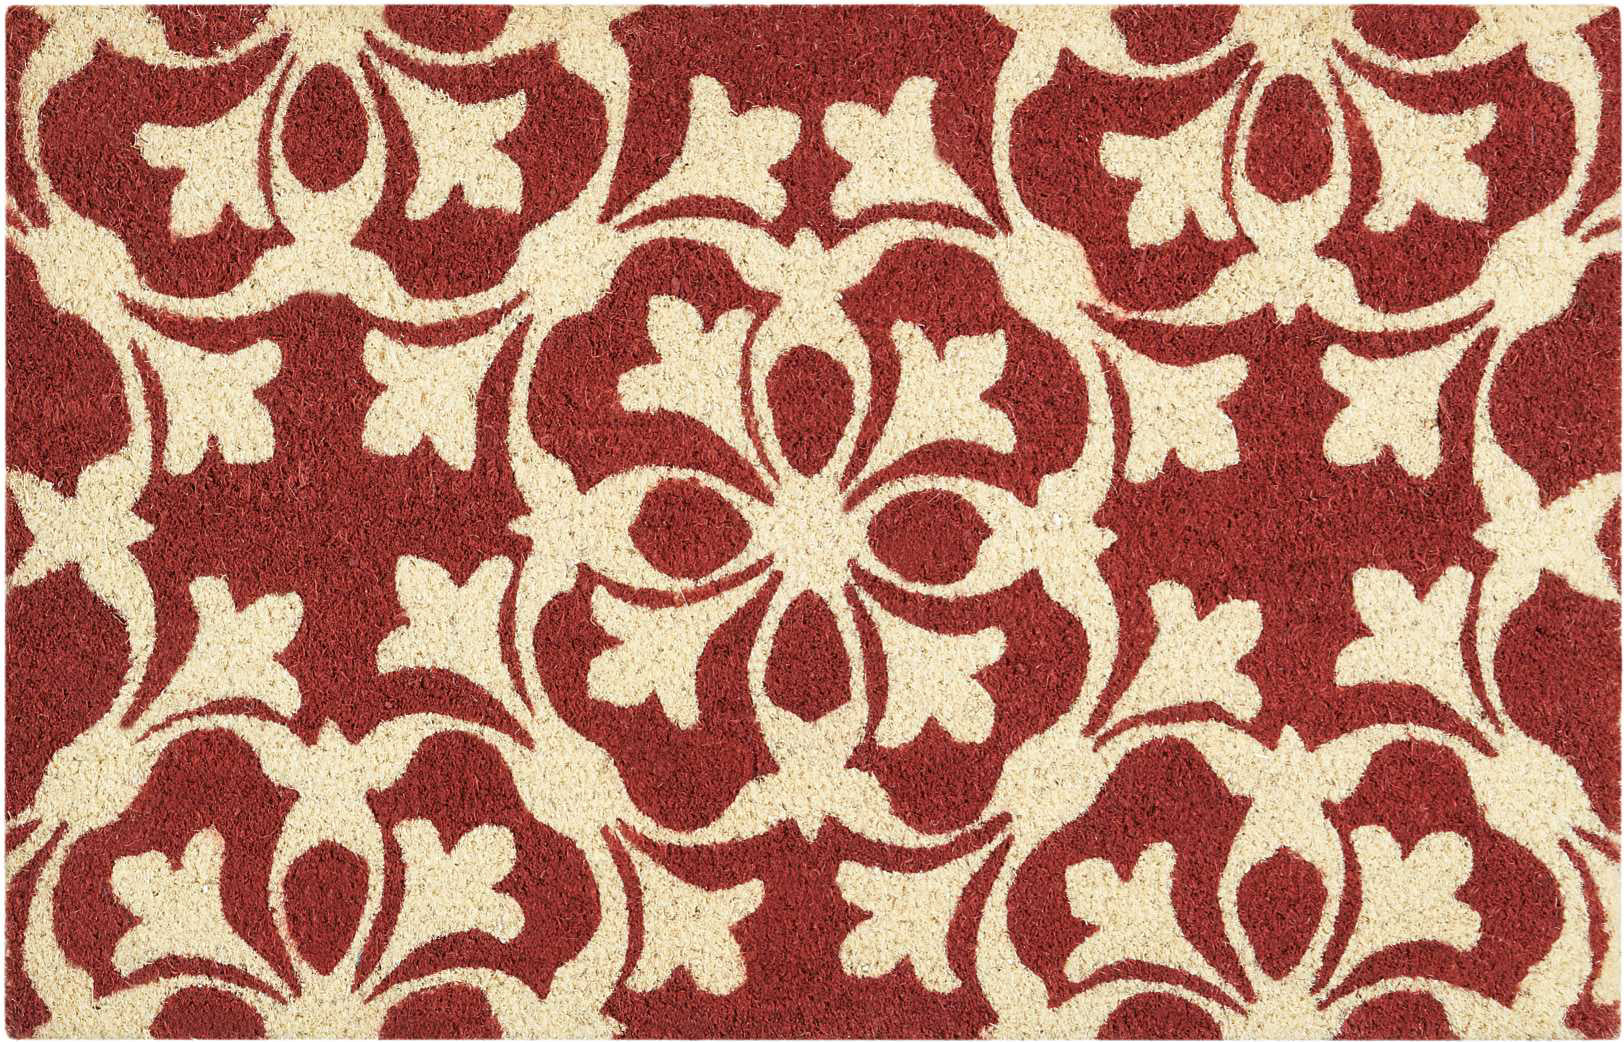 Nourison Wav17 Greetings WGT29 Coral Area Rug by Waverly main image